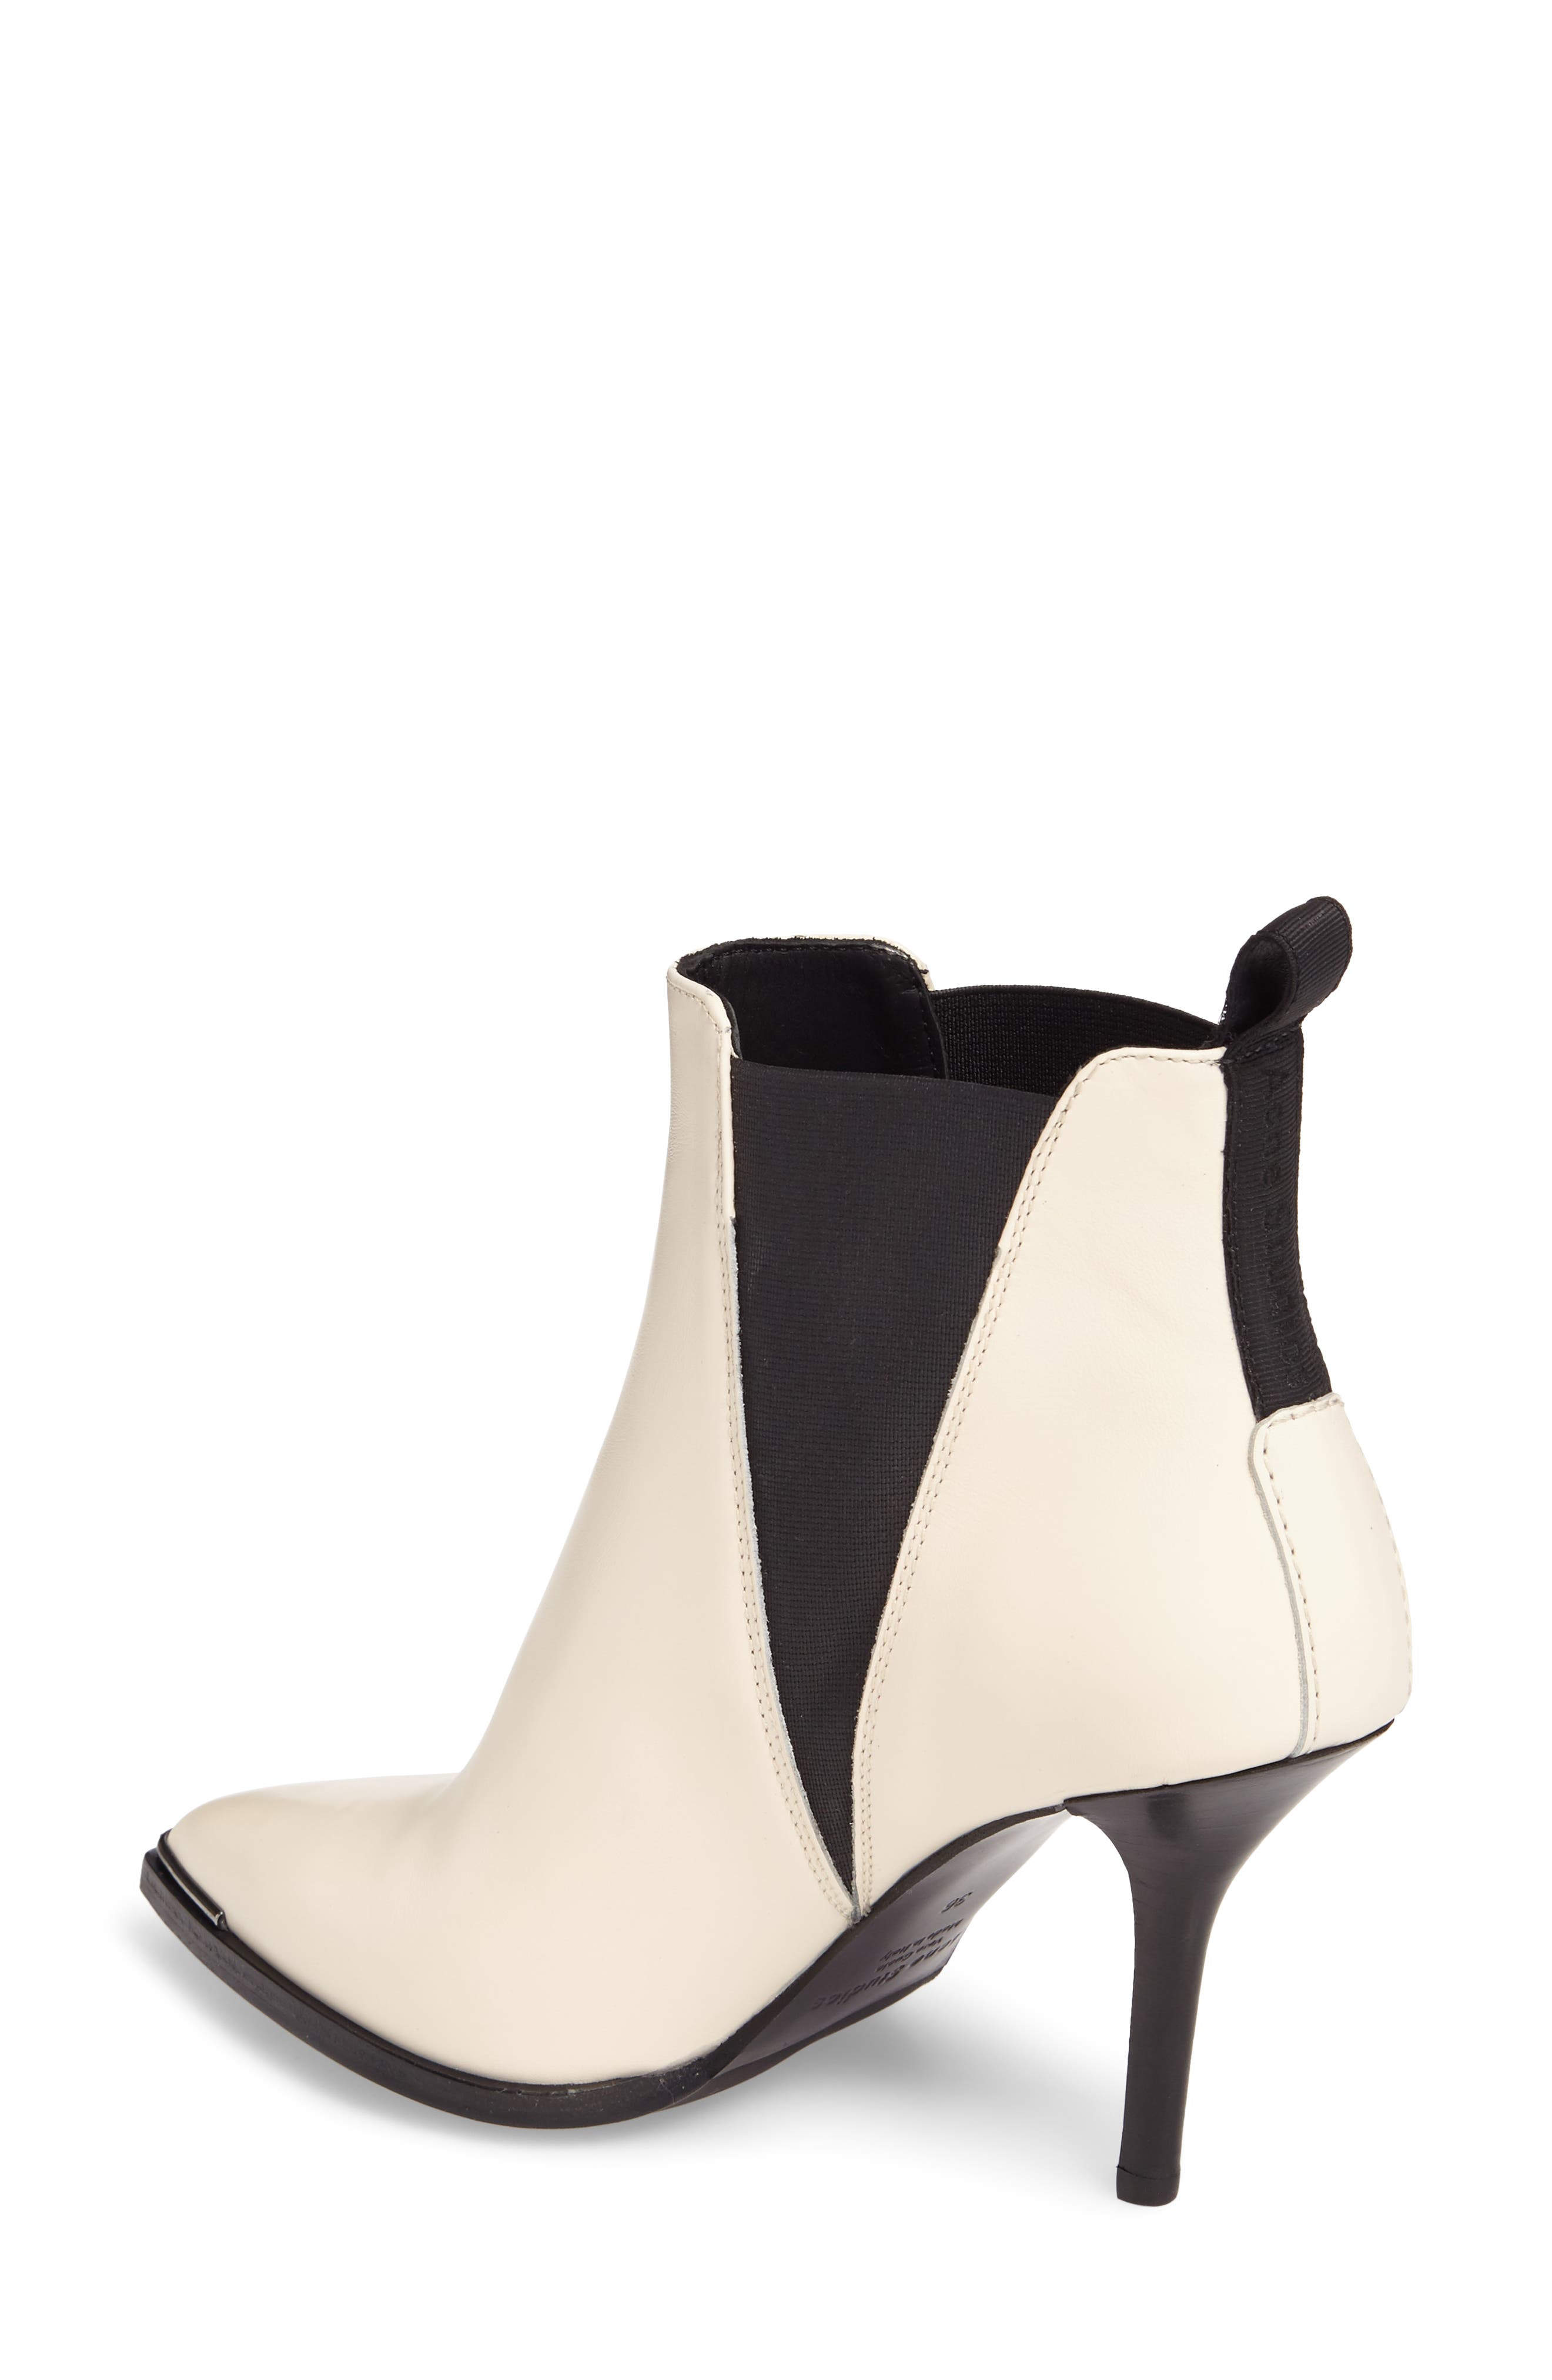 Jemma Pointy Toe Bootie,                             Alternate thumbnail 2, color,                             Off White